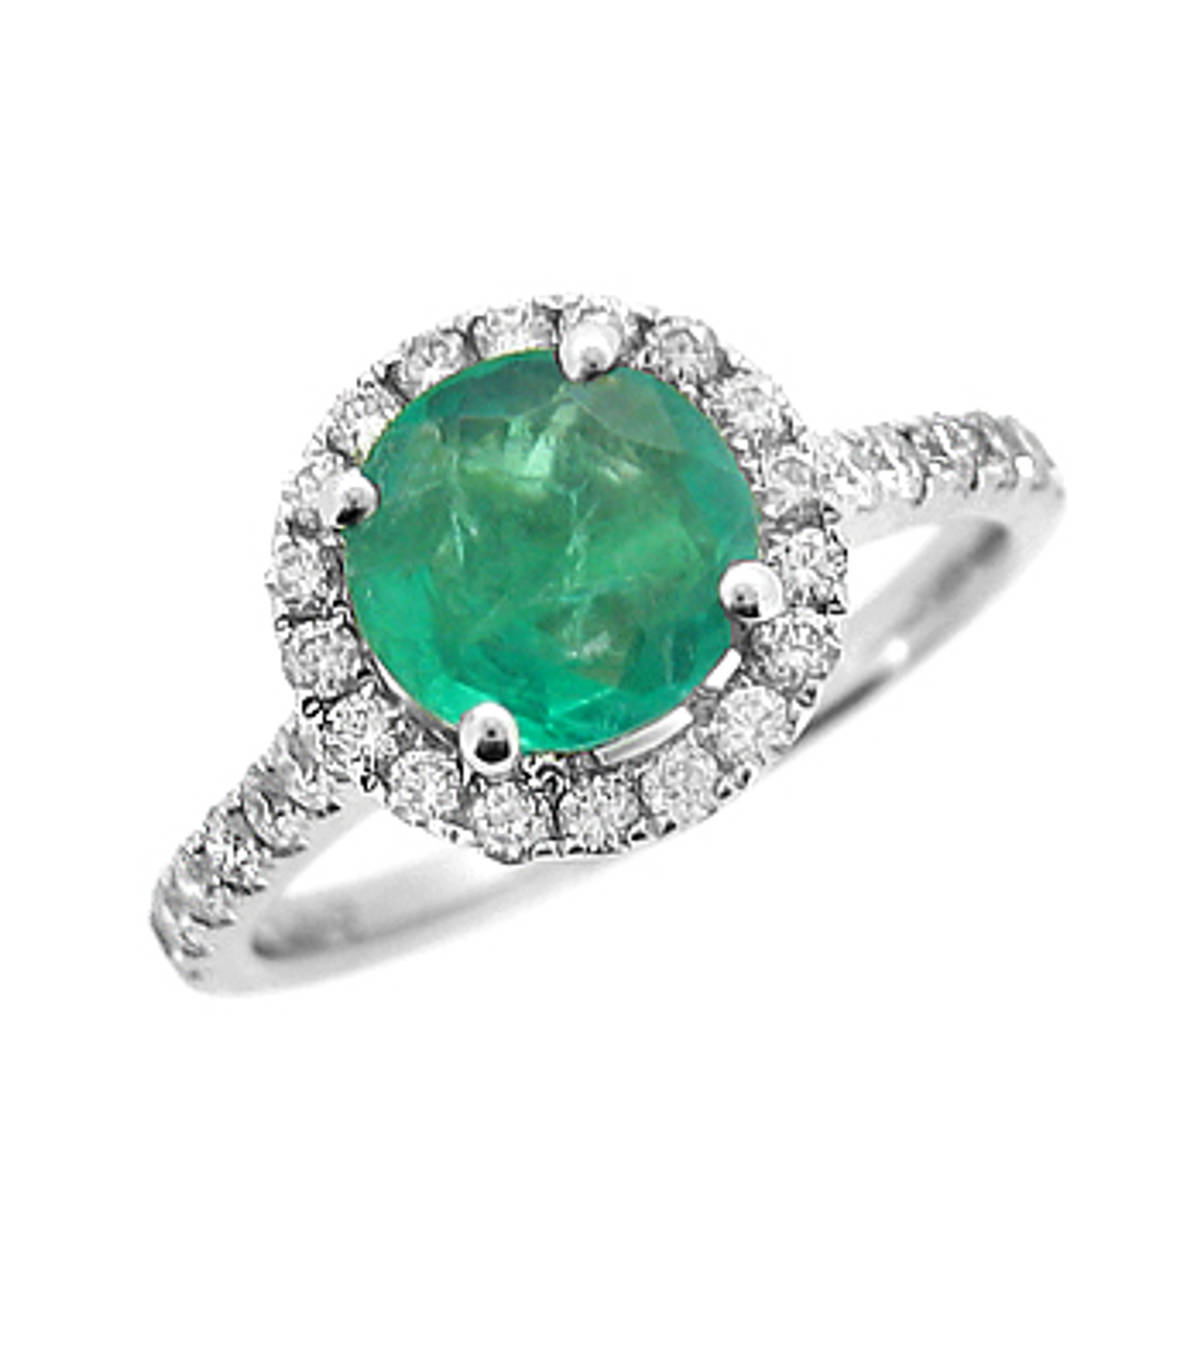 Emerald and diamond cluster ring with diamond shouldersPictured item: round emerald: 1.17ct/diamonds: brilliant cut 0.40ct set in 18k white gold